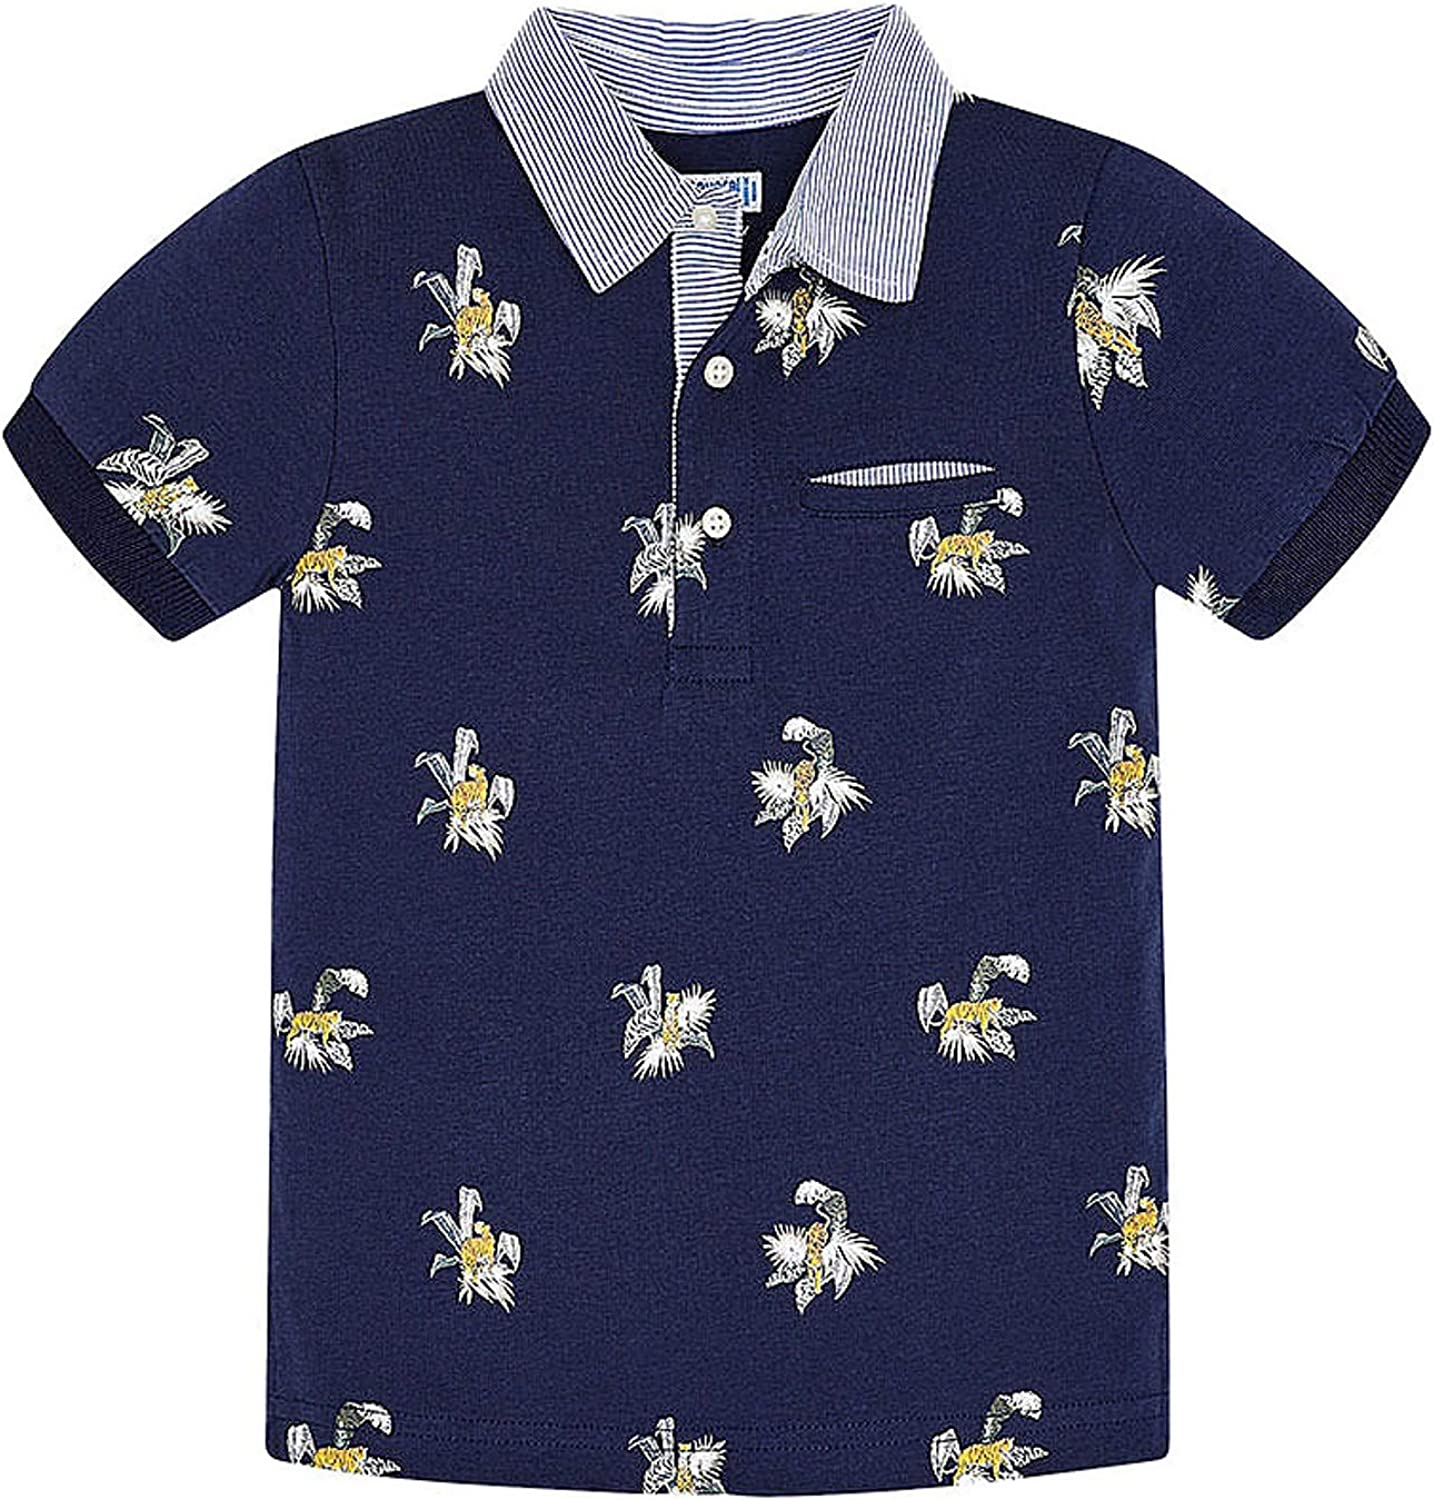 Mayoral - Polo s/s Stamped Tigers for Boys - 3146, Ink